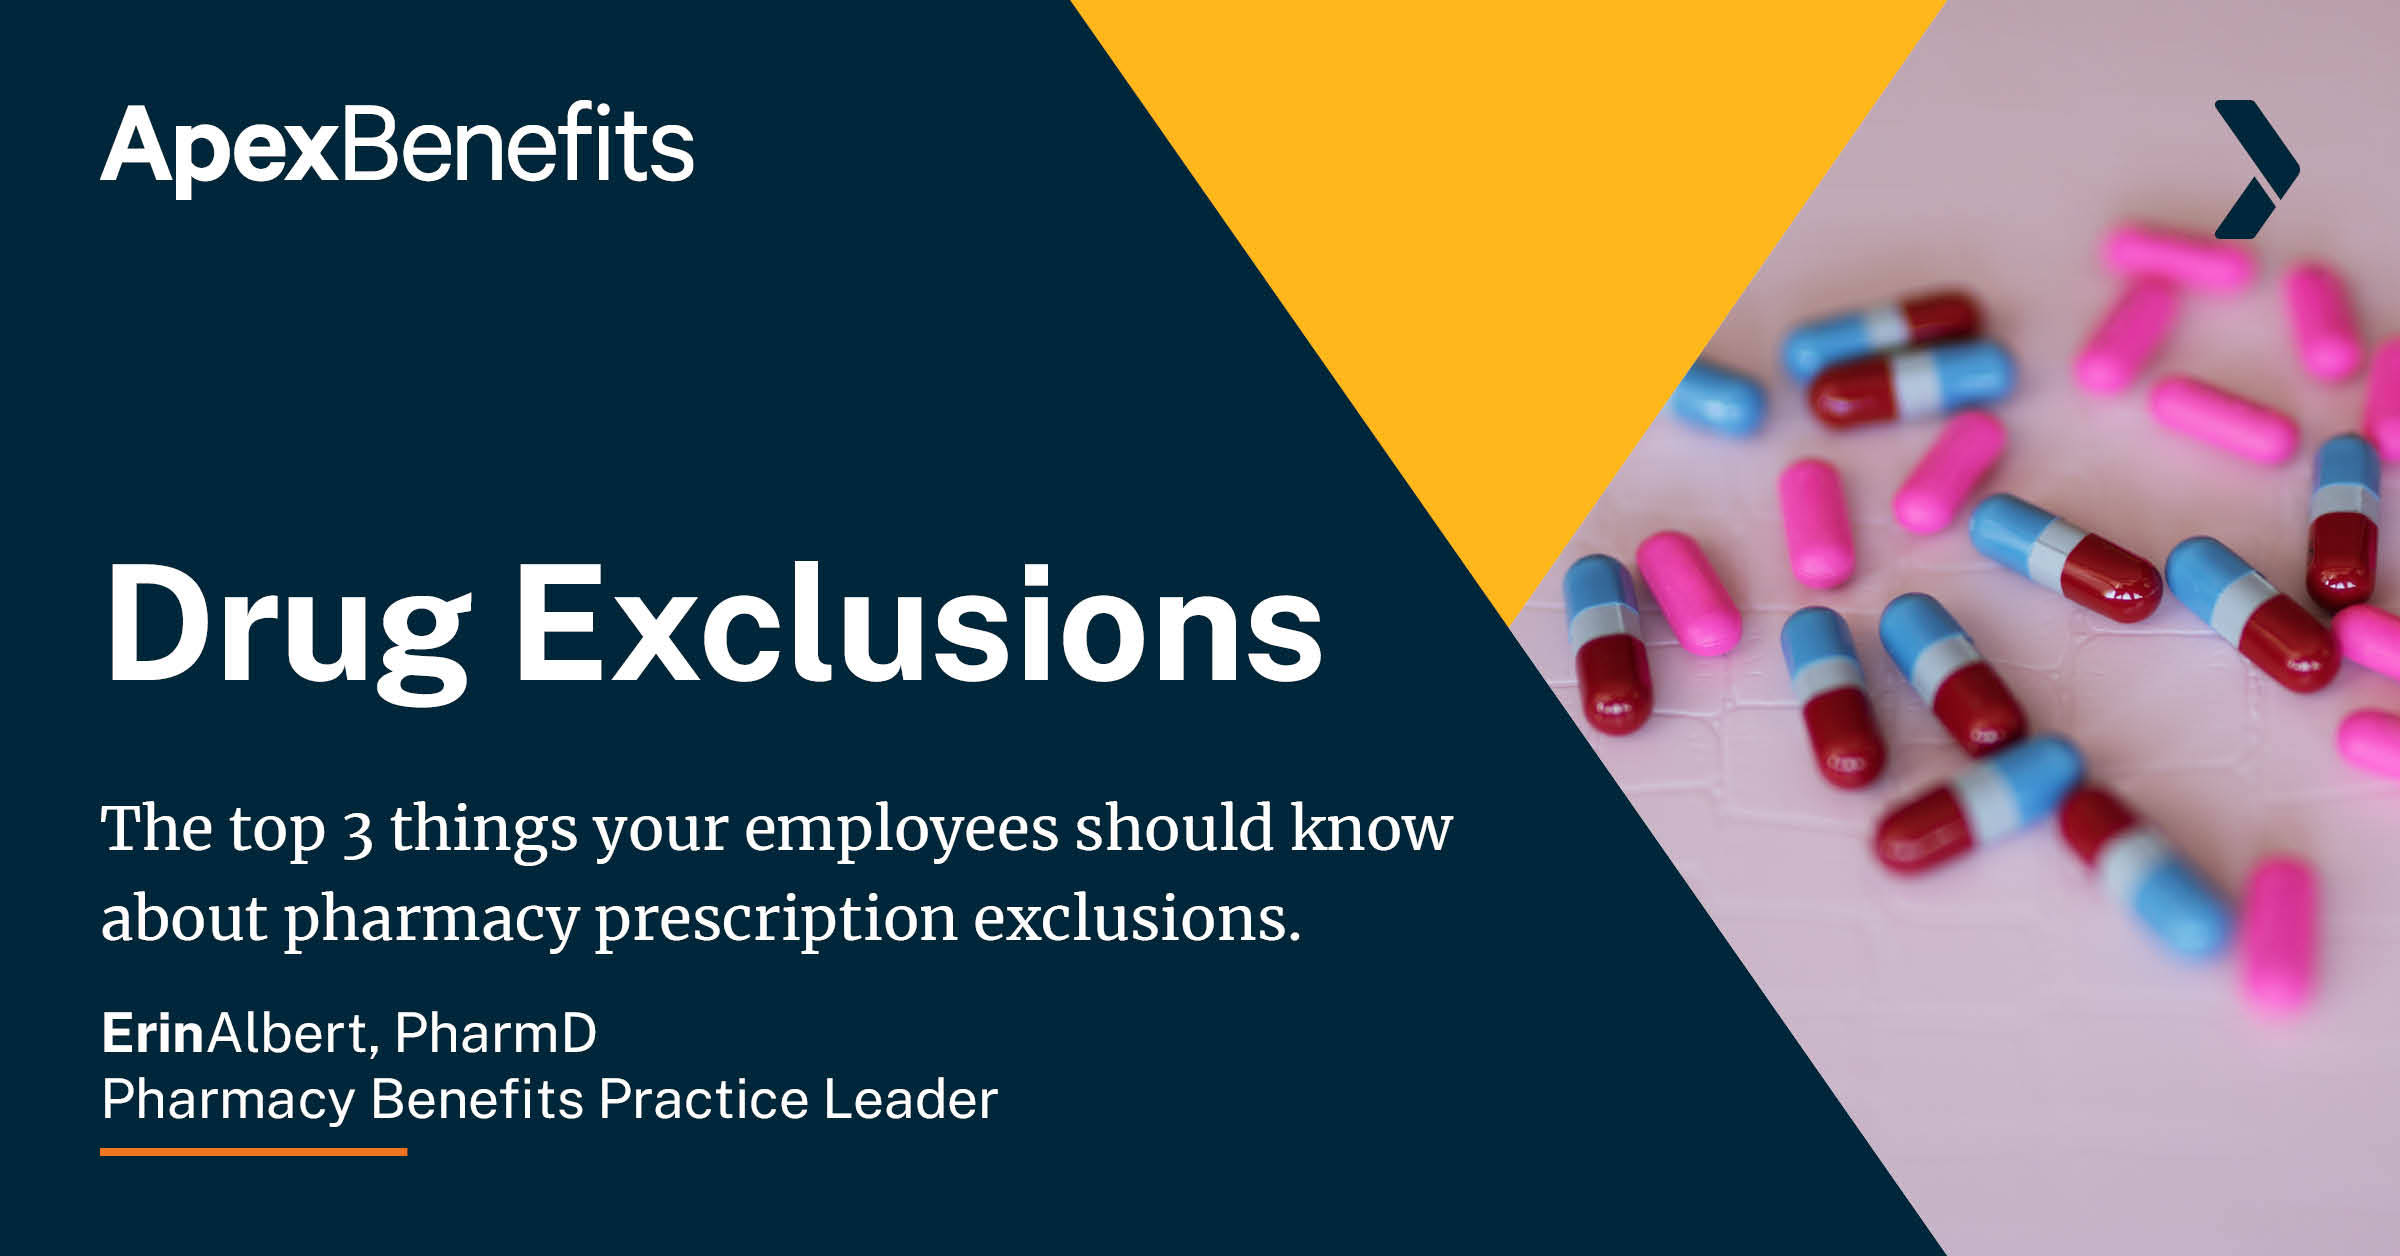 The 3 Things Your Employees Should Know About Pharmacy Prescription Drug Exclusions